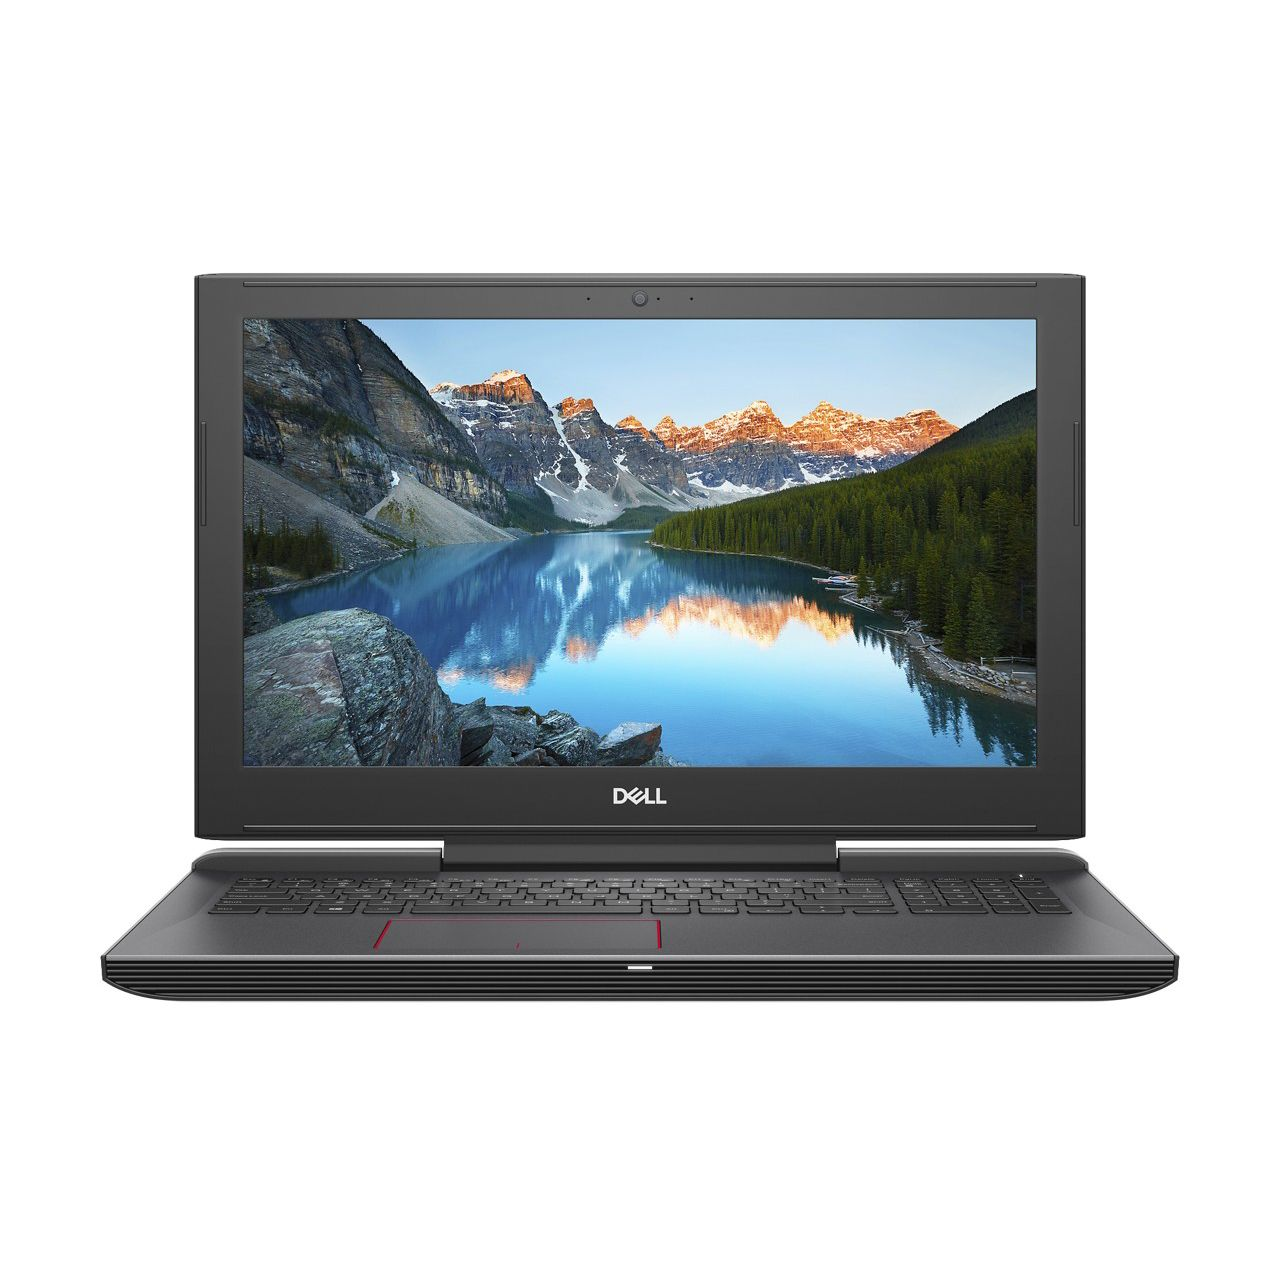 Notebook Dell Inspiron 7577 15.6 Full HD Intel Core i7-7700HQ GTX 1050 Ti-4GB RAM 8GB HDD 1TB + SSD 128GB Windows 10 Pro